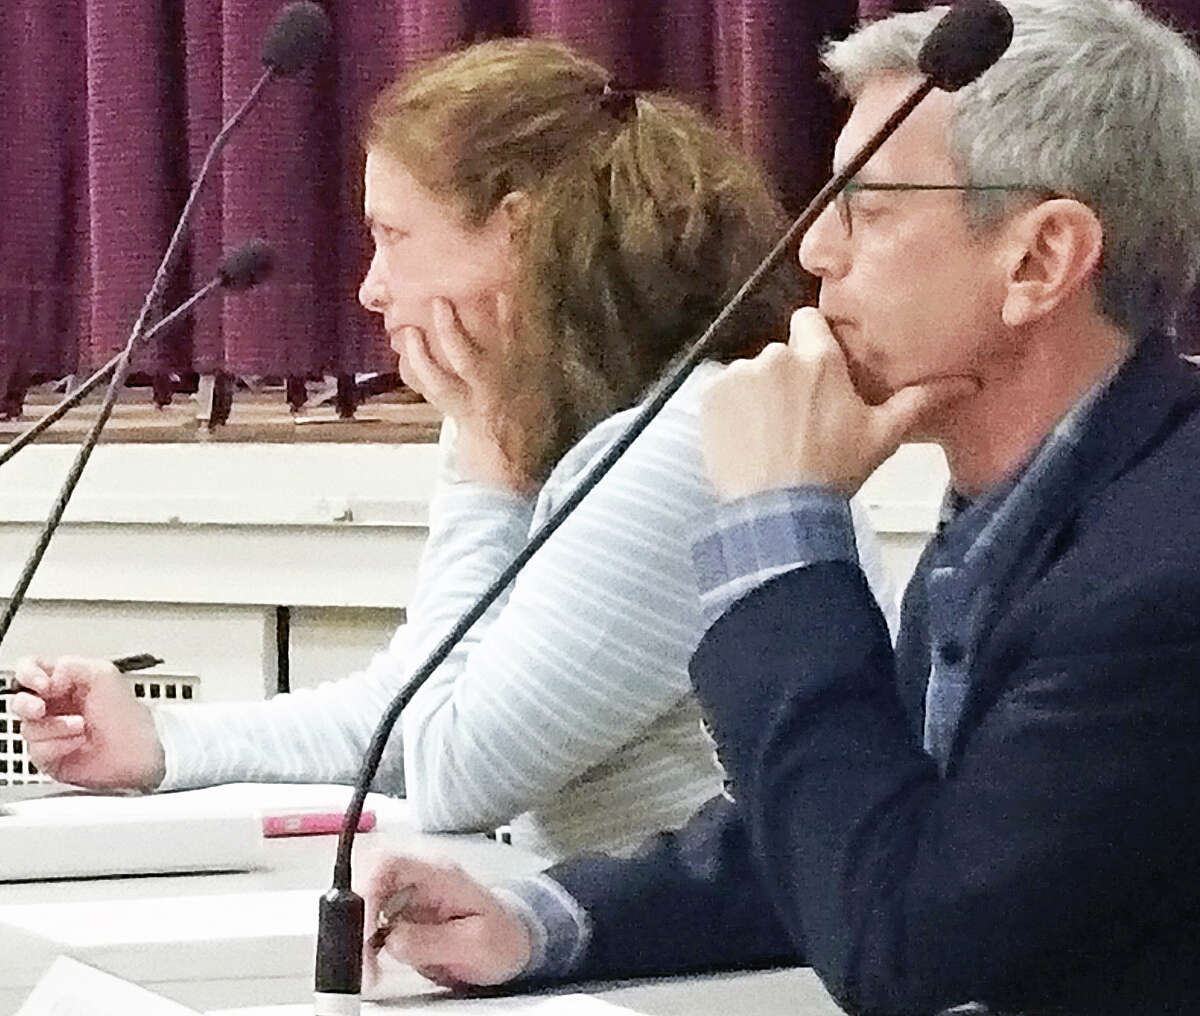 Board of Education members Jessica Gerber and Marc Patten at Wednesday's special school board meeting regarding the governor's proposed budget.